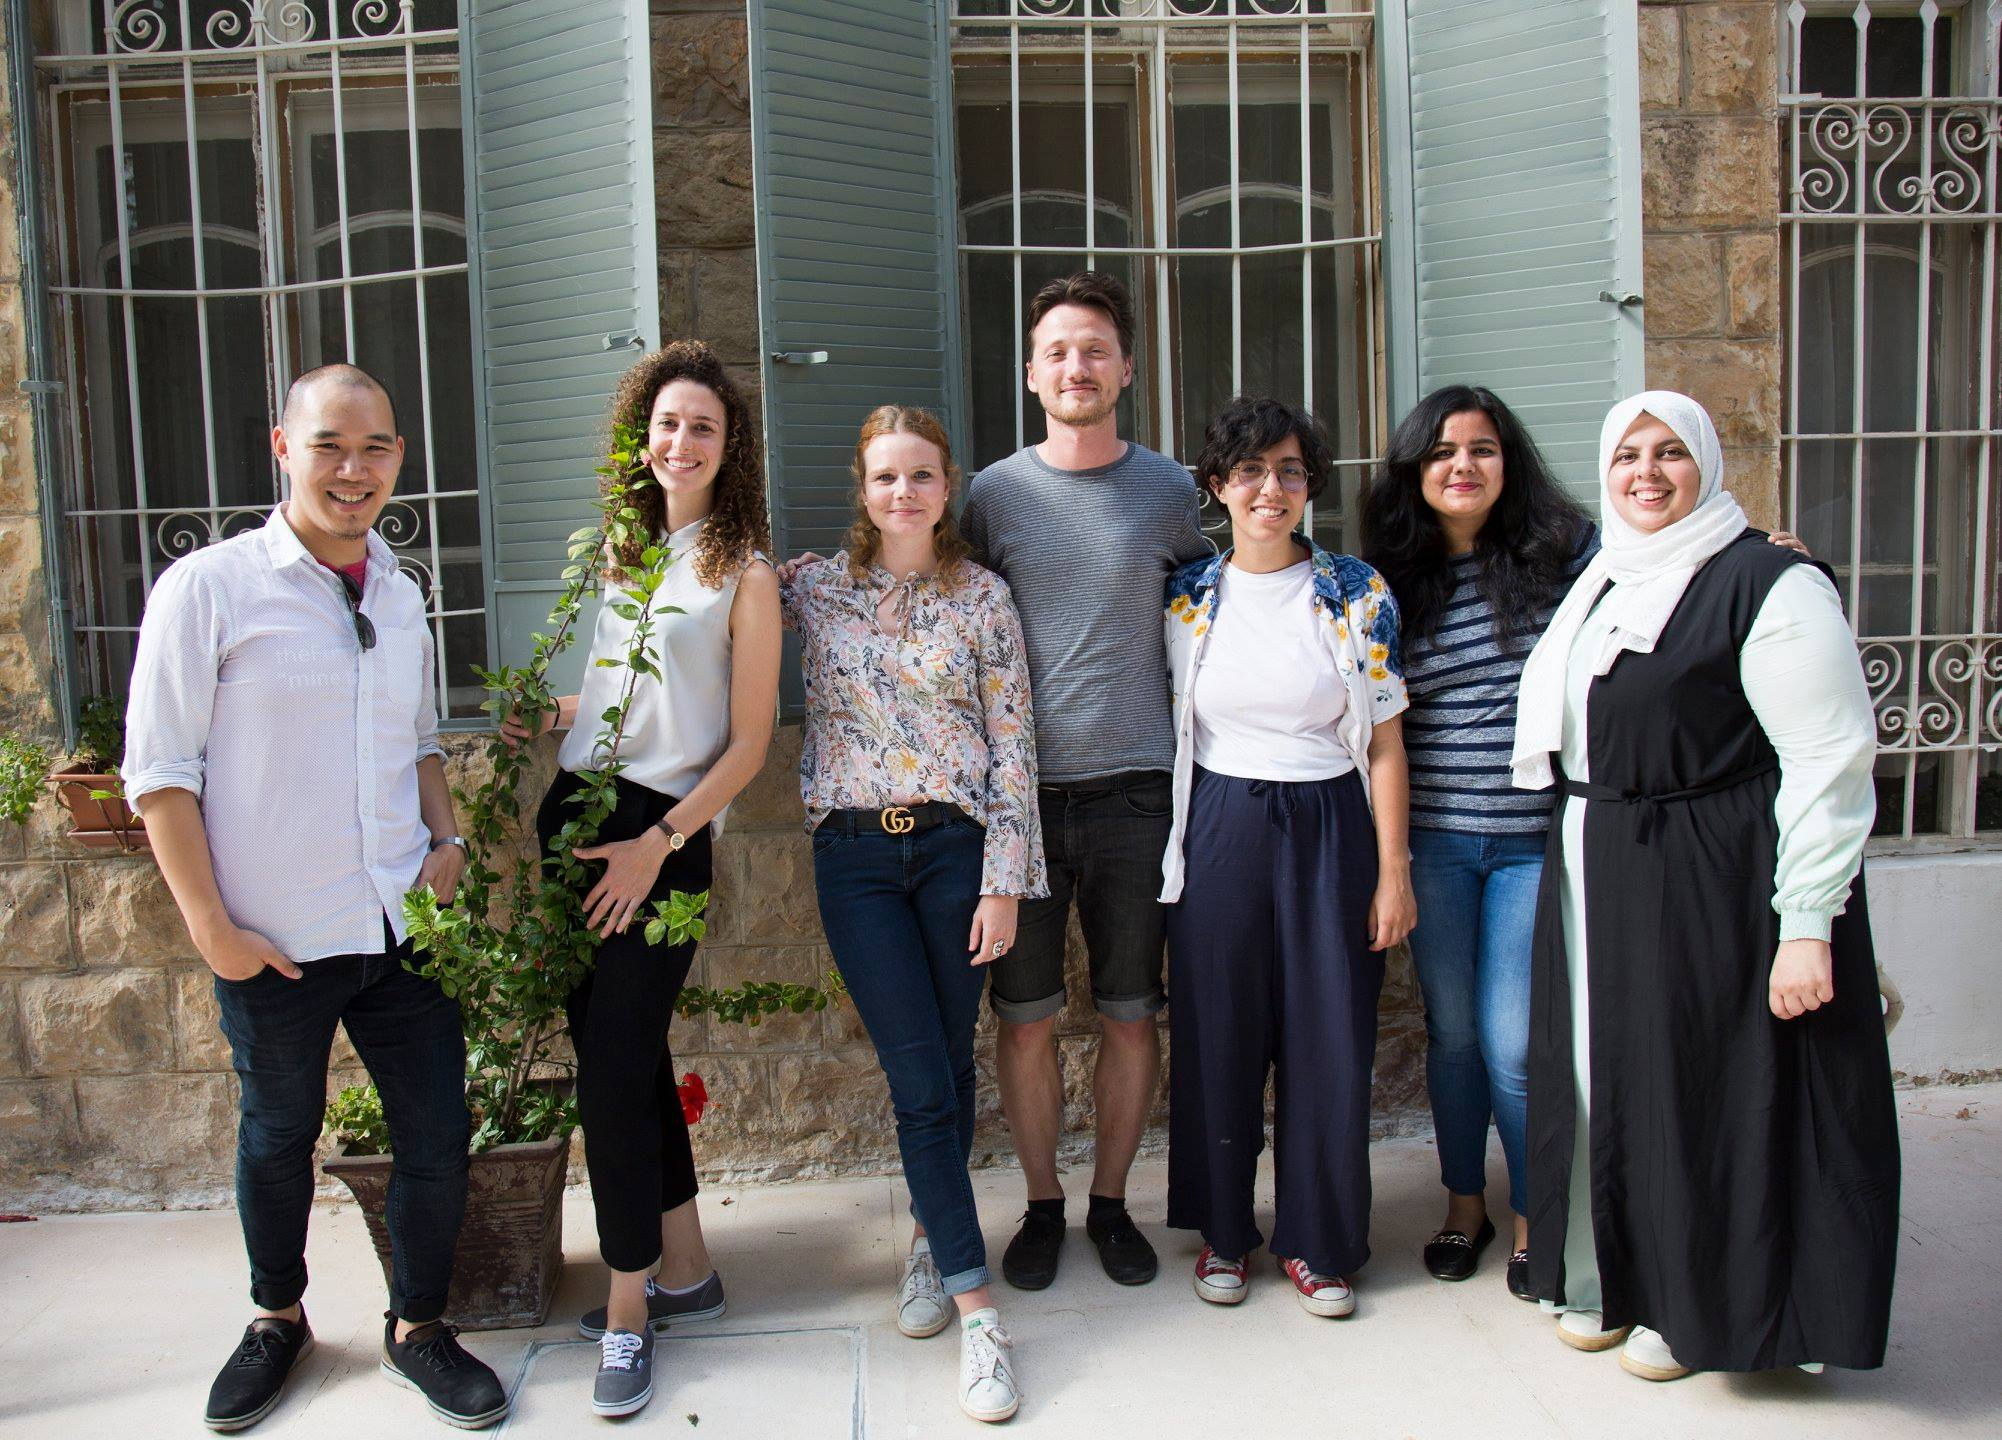 From left to right: Eric (front end developer from the U.S.), Nour (UX and graphic designer from Palestine/U.S.), Louise (representing Rasheed TI-JO), Zdenek (DATA4CHANGE alumni, team leader), Zina (representing Rasheed TI-JO), Devangana (data researcher from India) and Saja (graphic designer from Jordan).